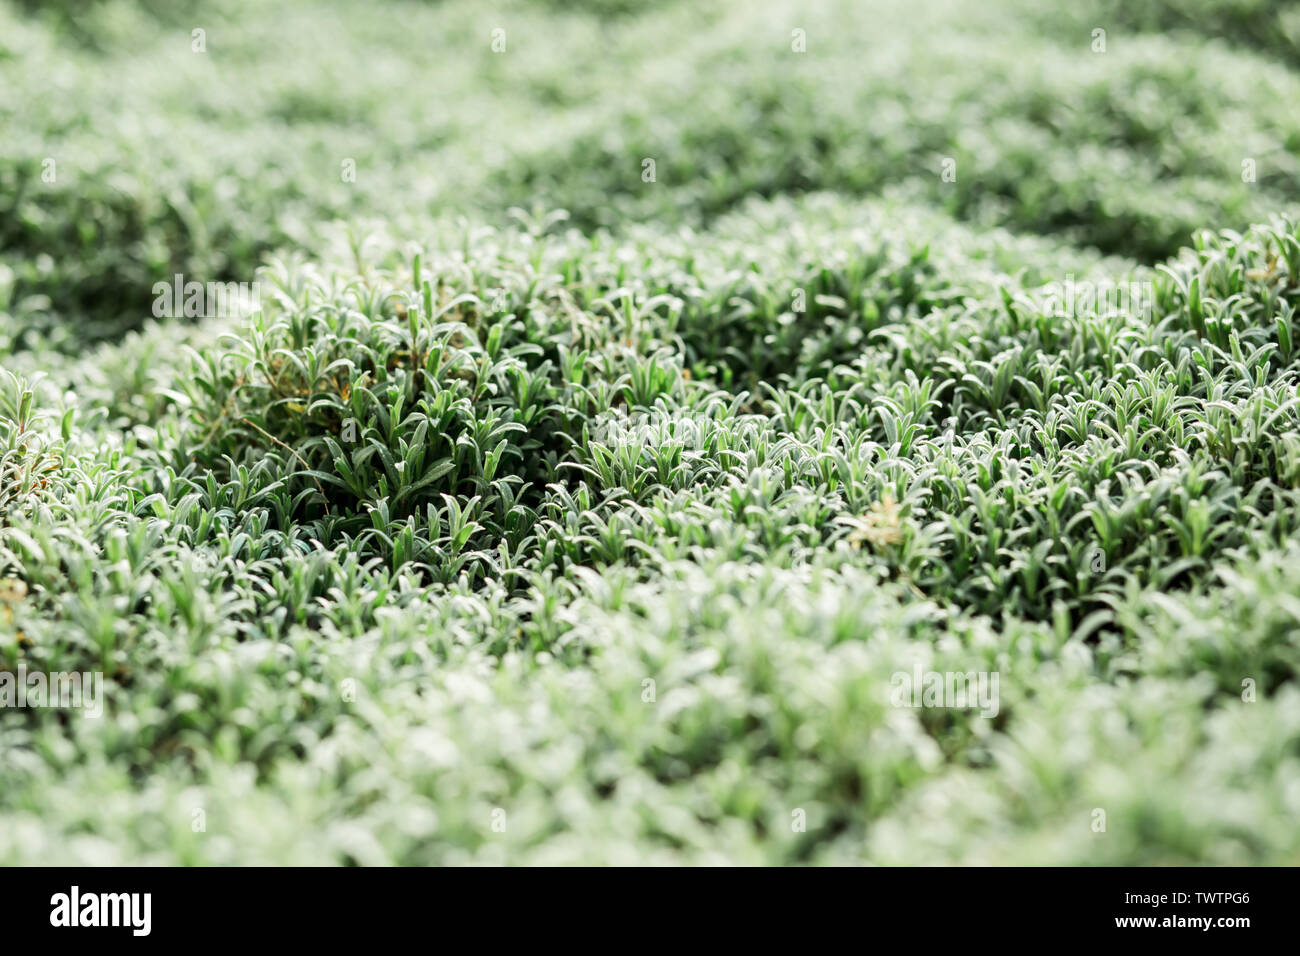 Fresh green grass with dew drops close up. Water driops on the fresh grass after rain. Light morning dew on the green grass. - Stock Image